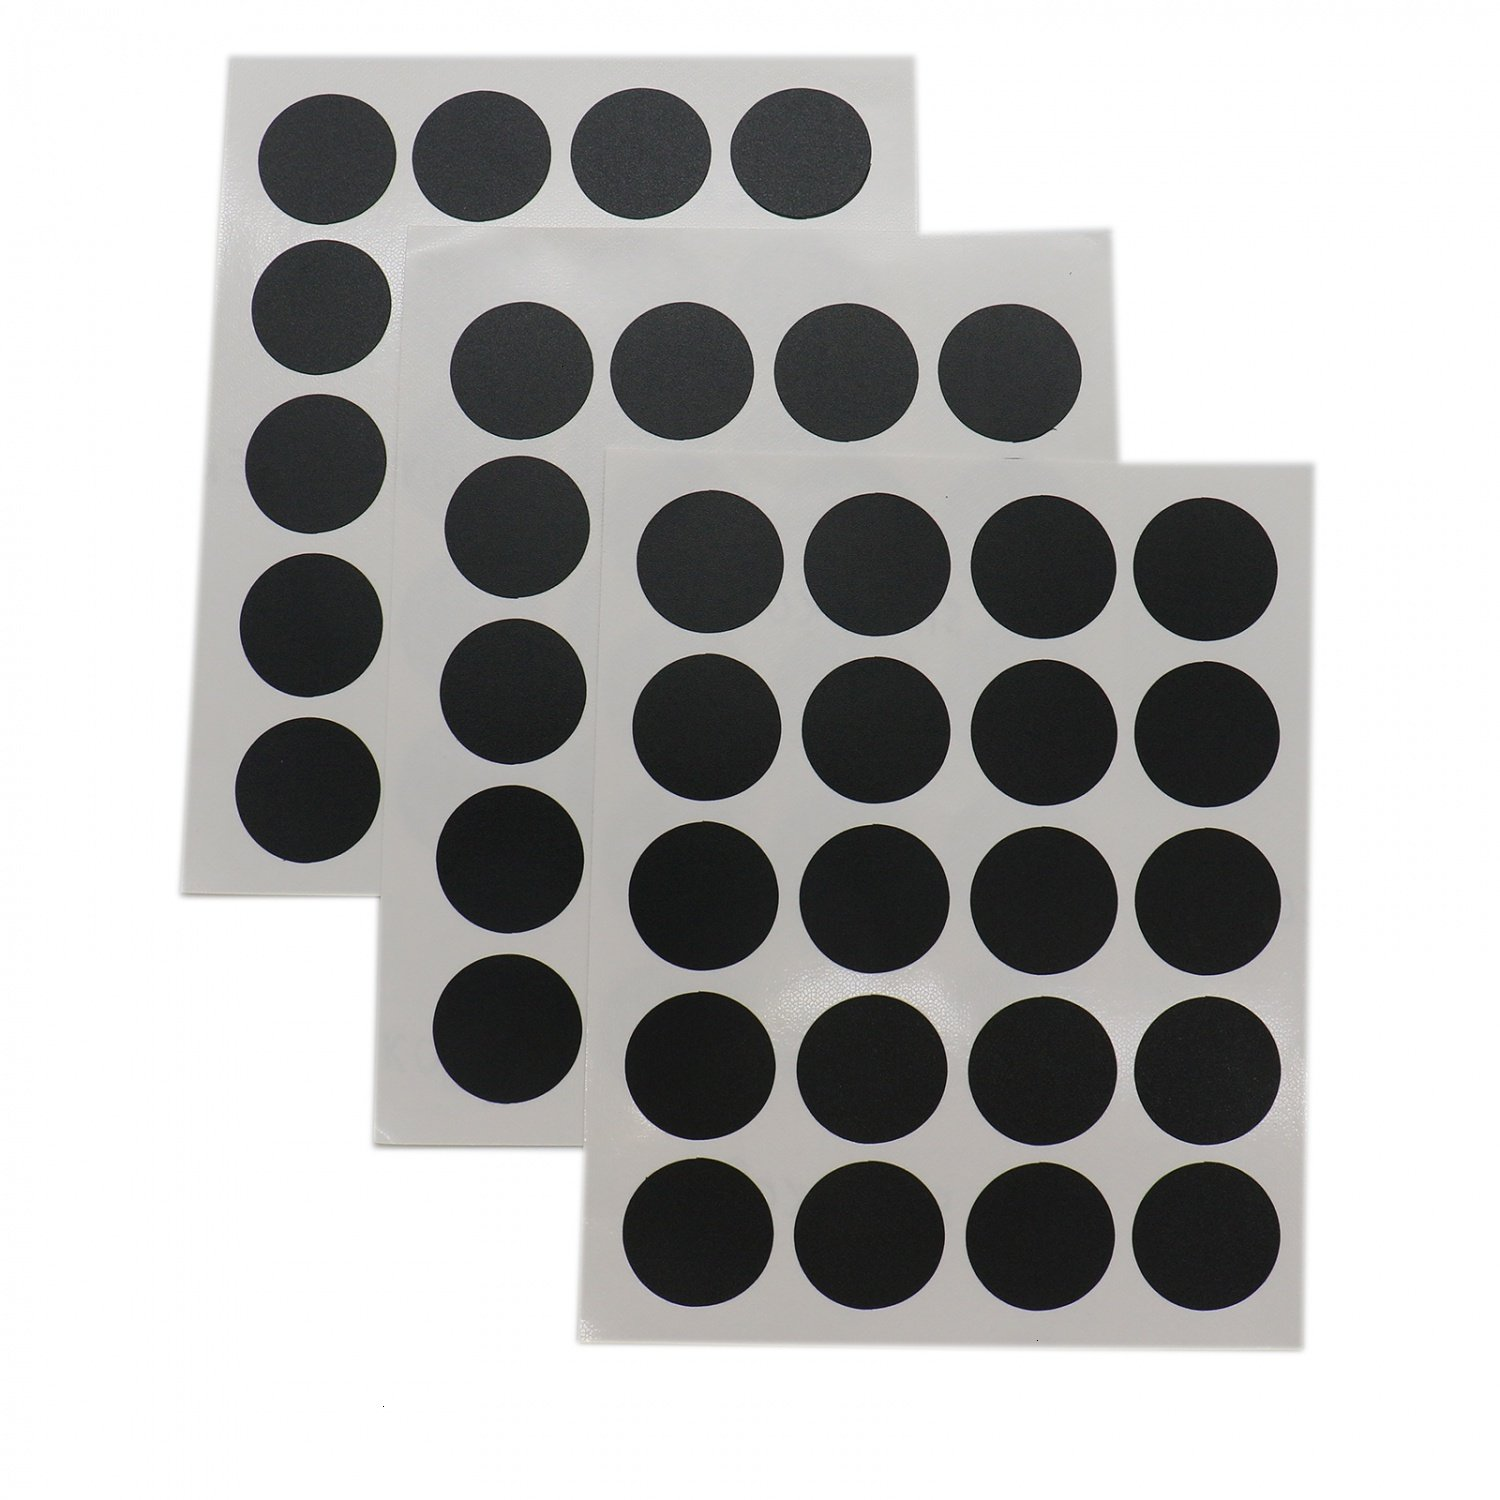 Buorsa 200 Pcs/10 Sheet Premium Reusable Chalkboard Stickers Heavy Duty Chalkboard Labels For Spice Jars And Organizing